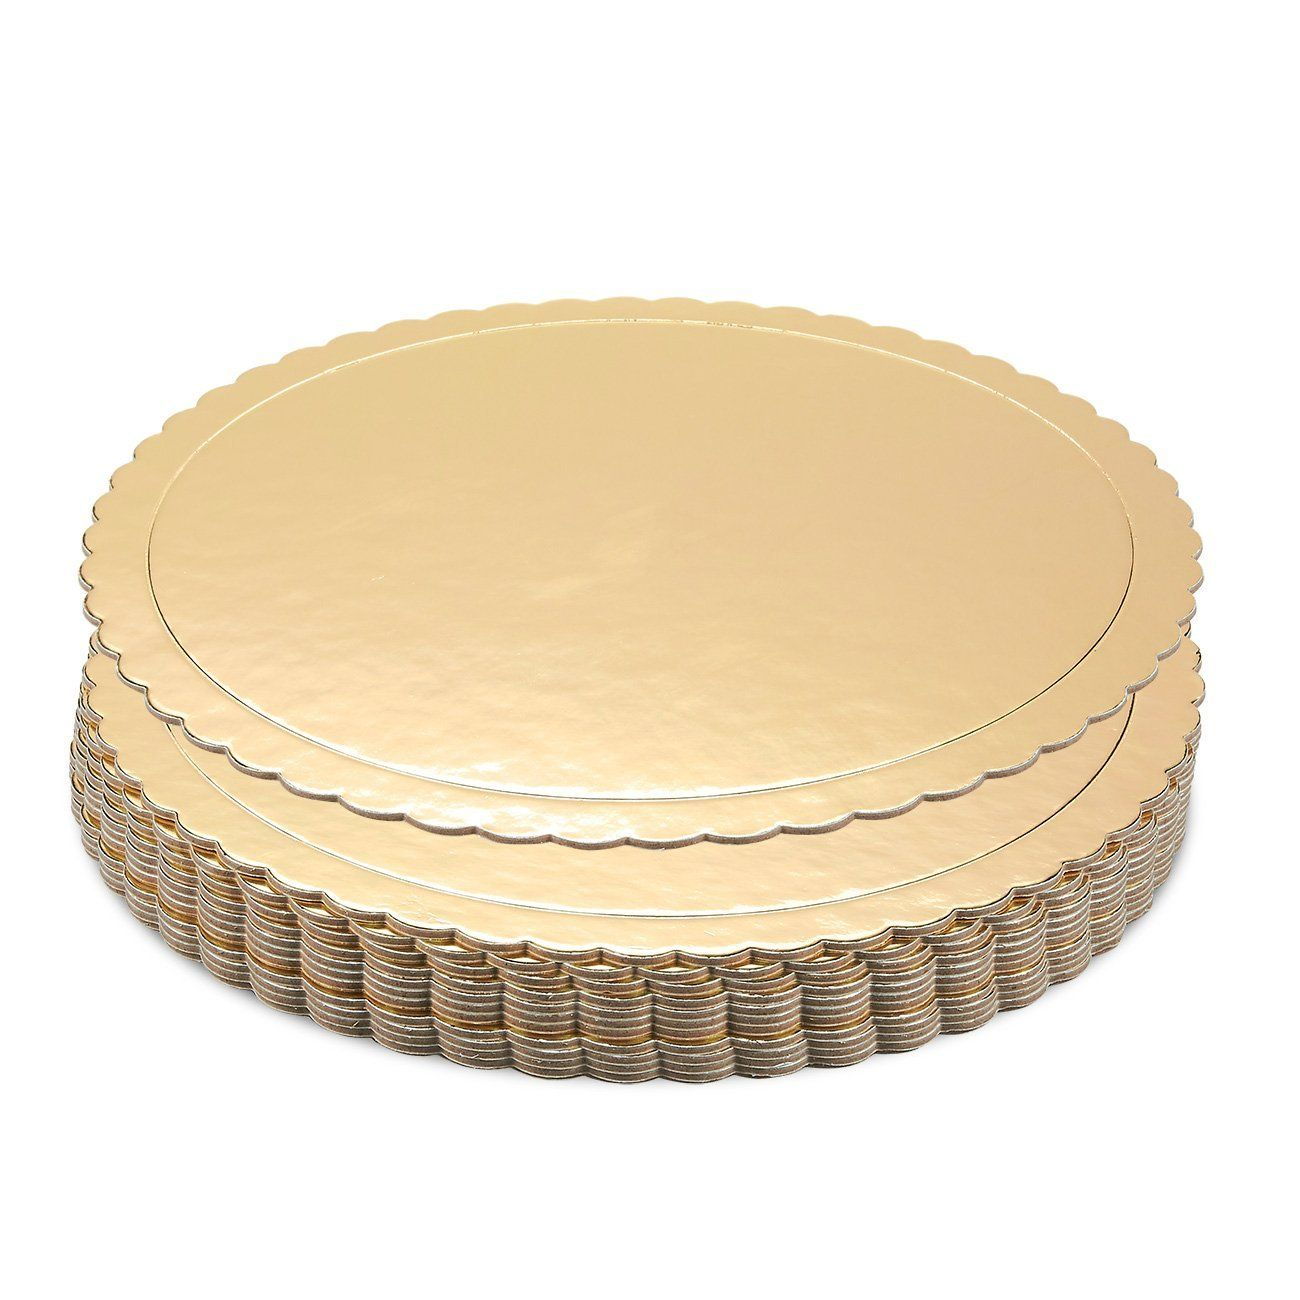 8 Gold Foil Cake Board Mrtakeoutbags Gold Foil Cake Gold Foil Cake Board